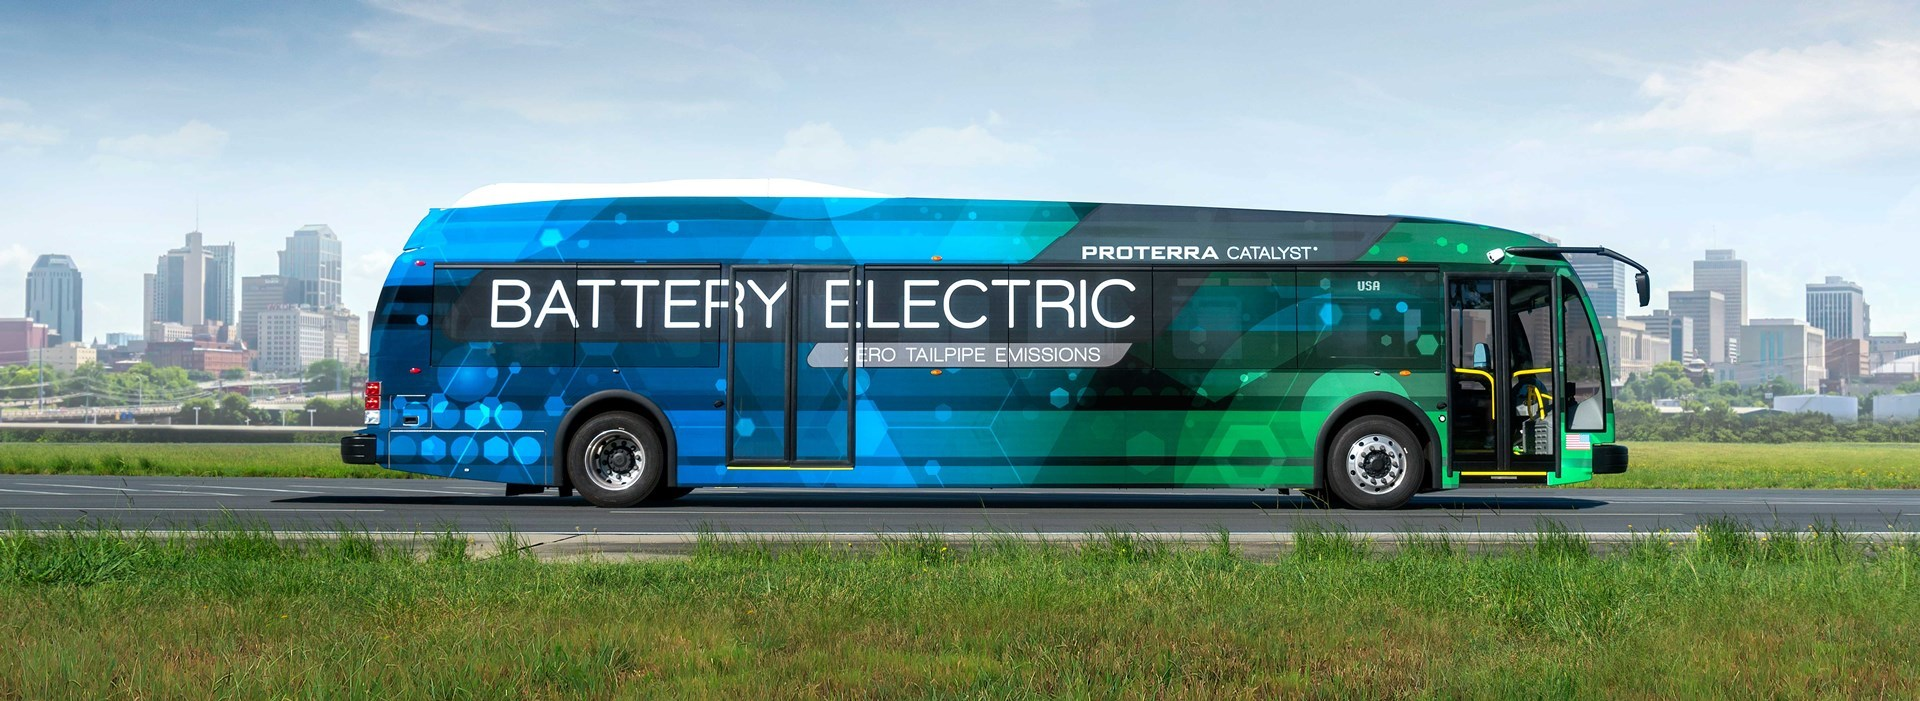 Exterior of new, all-electric buses CTA is purchasing from Proterra